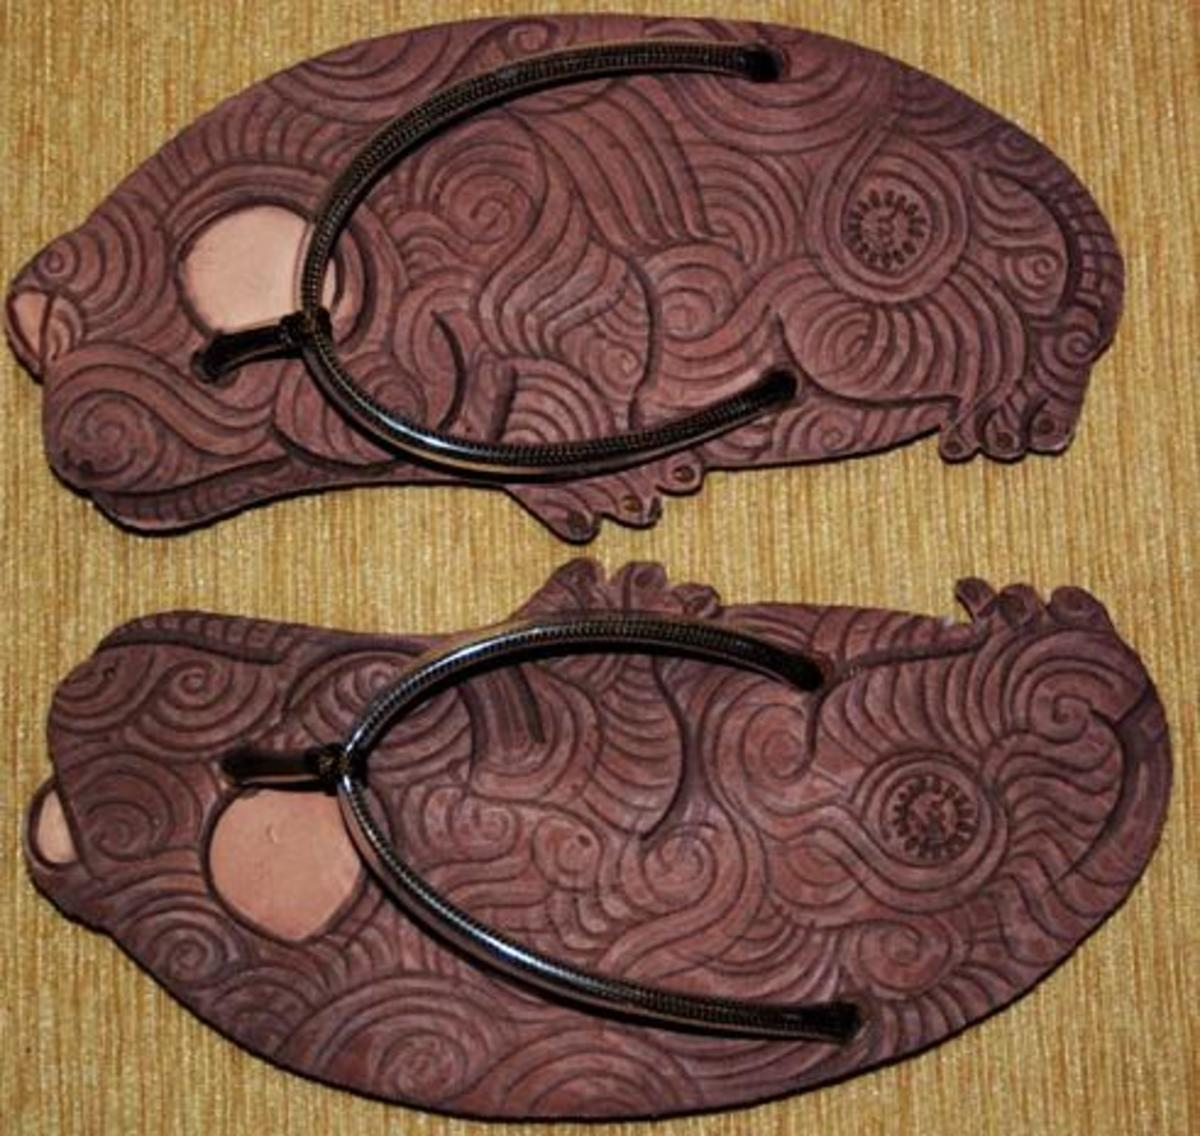 Sponge Sandal with Batik motif from Indonesia